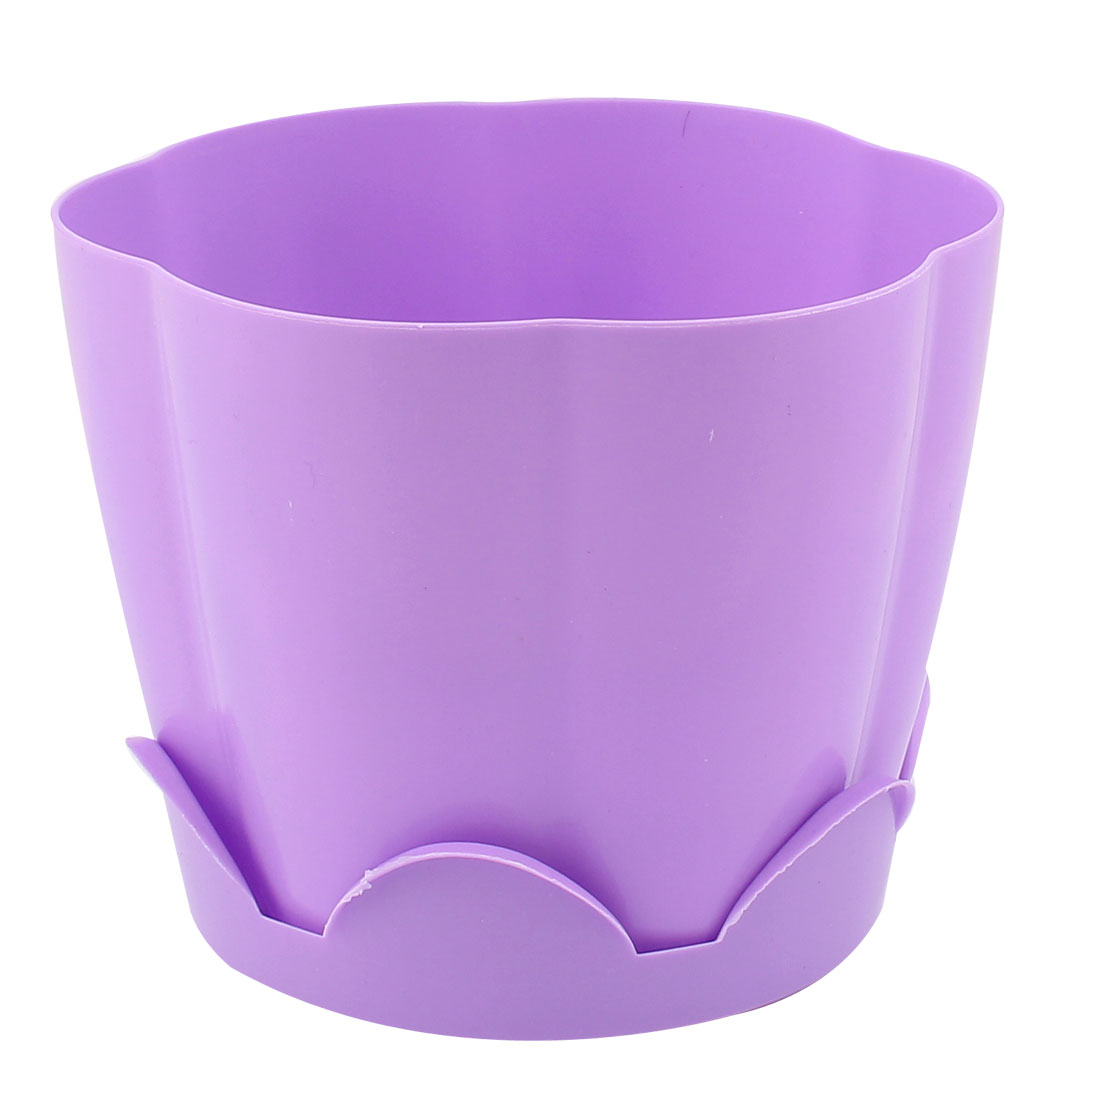 Light Purple Petal Shape Resin Plant Flower Pot Planter Flowerpot 13 x 10.5cm